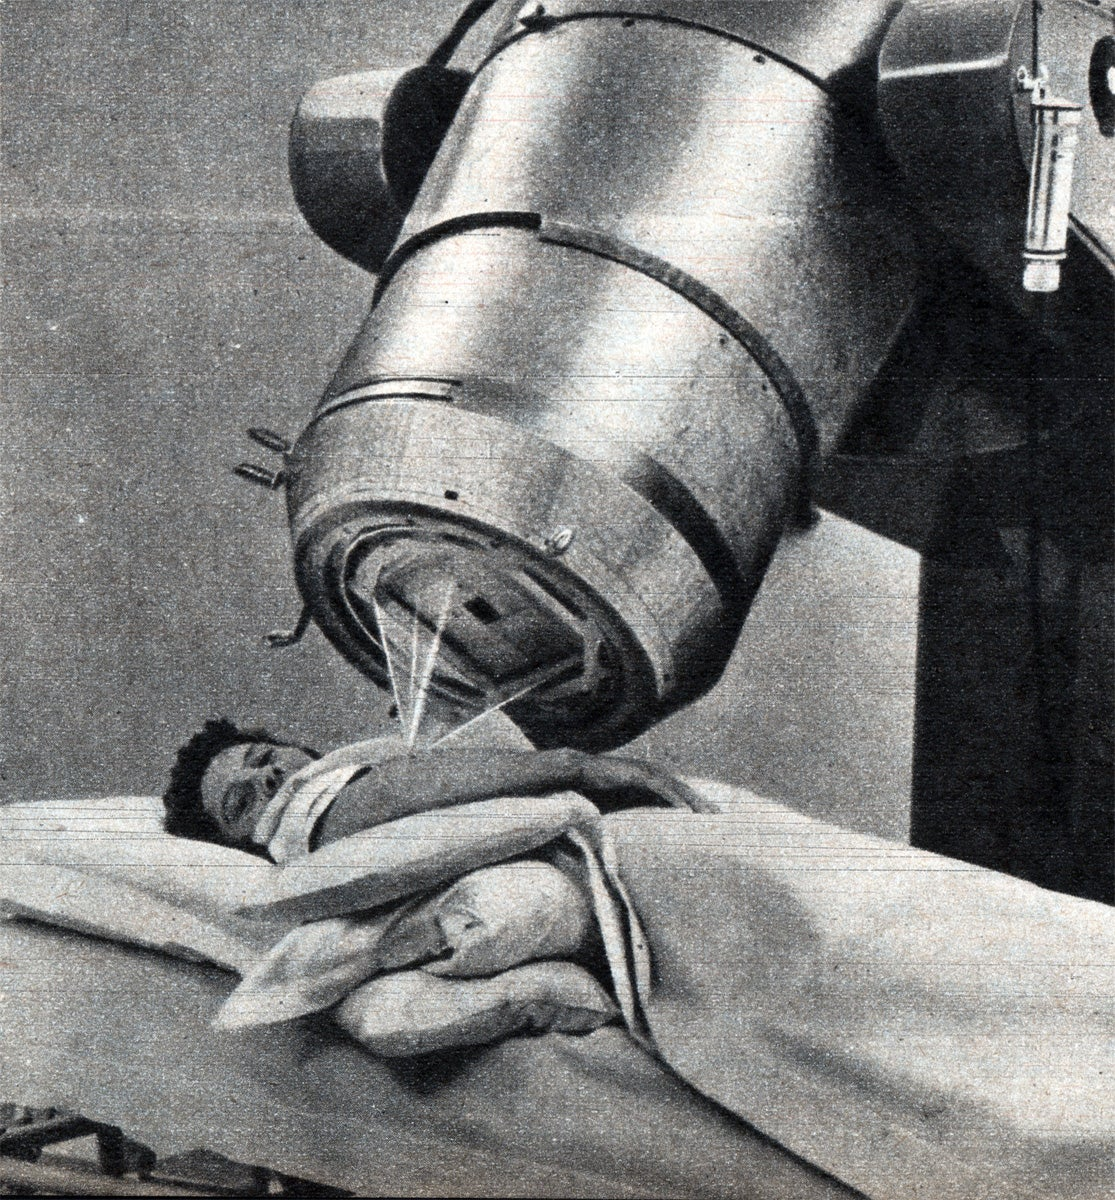 22 Strange Medical Instruments From the Past That Make You Shudder